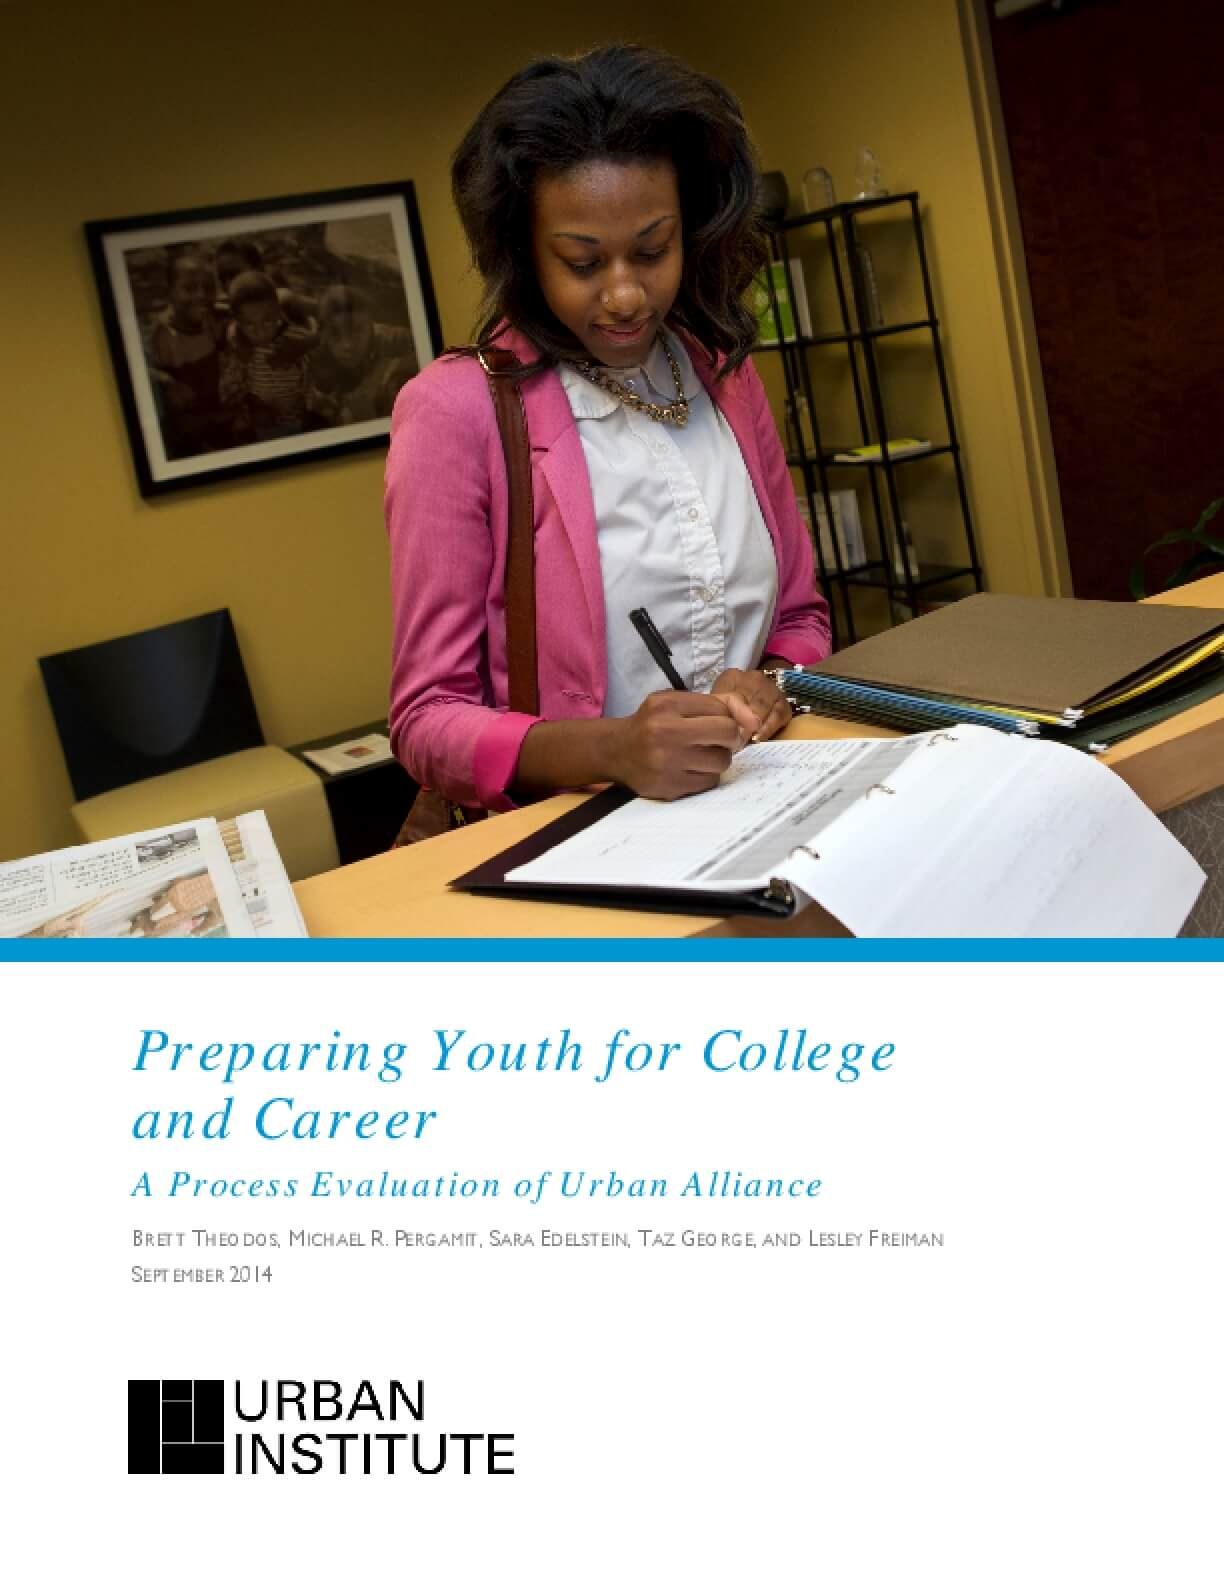 Preparing Youth for College and Career: A Process Evaluation of Urban Alliance